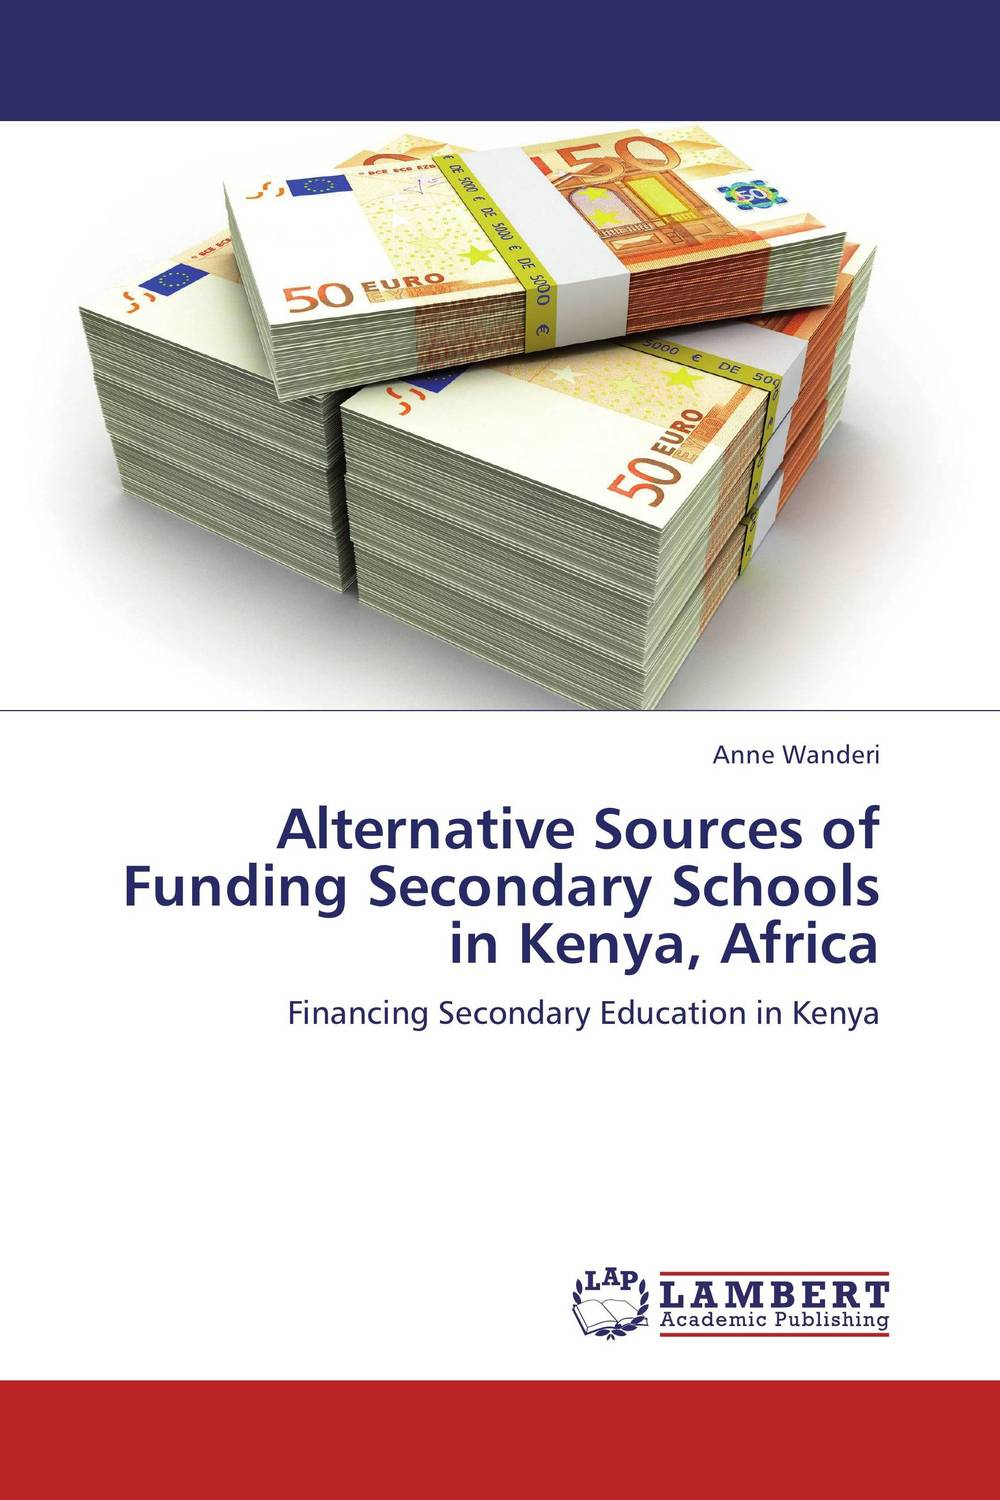 купить Alternative Sources of Funding Secondary Schools in Kenya, Africa недорого